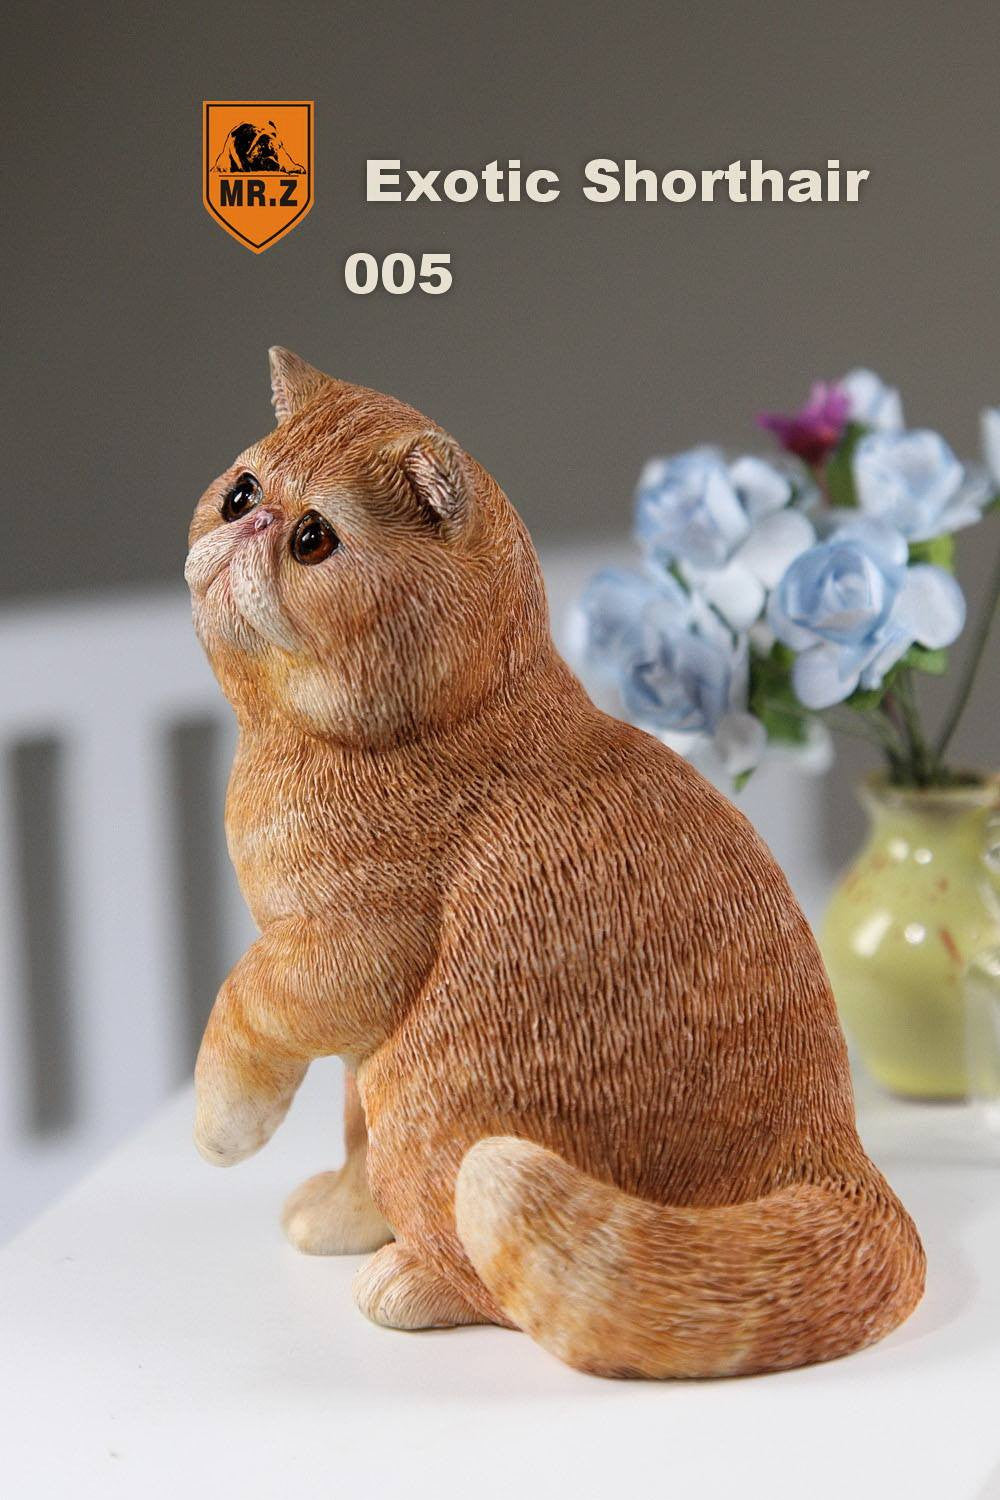 MR.Z - Real Animal Series No.8 - 1/6th Scale Exotic Shorthair Cat (Garfield) 001-005 - Marvelous Toys - 35